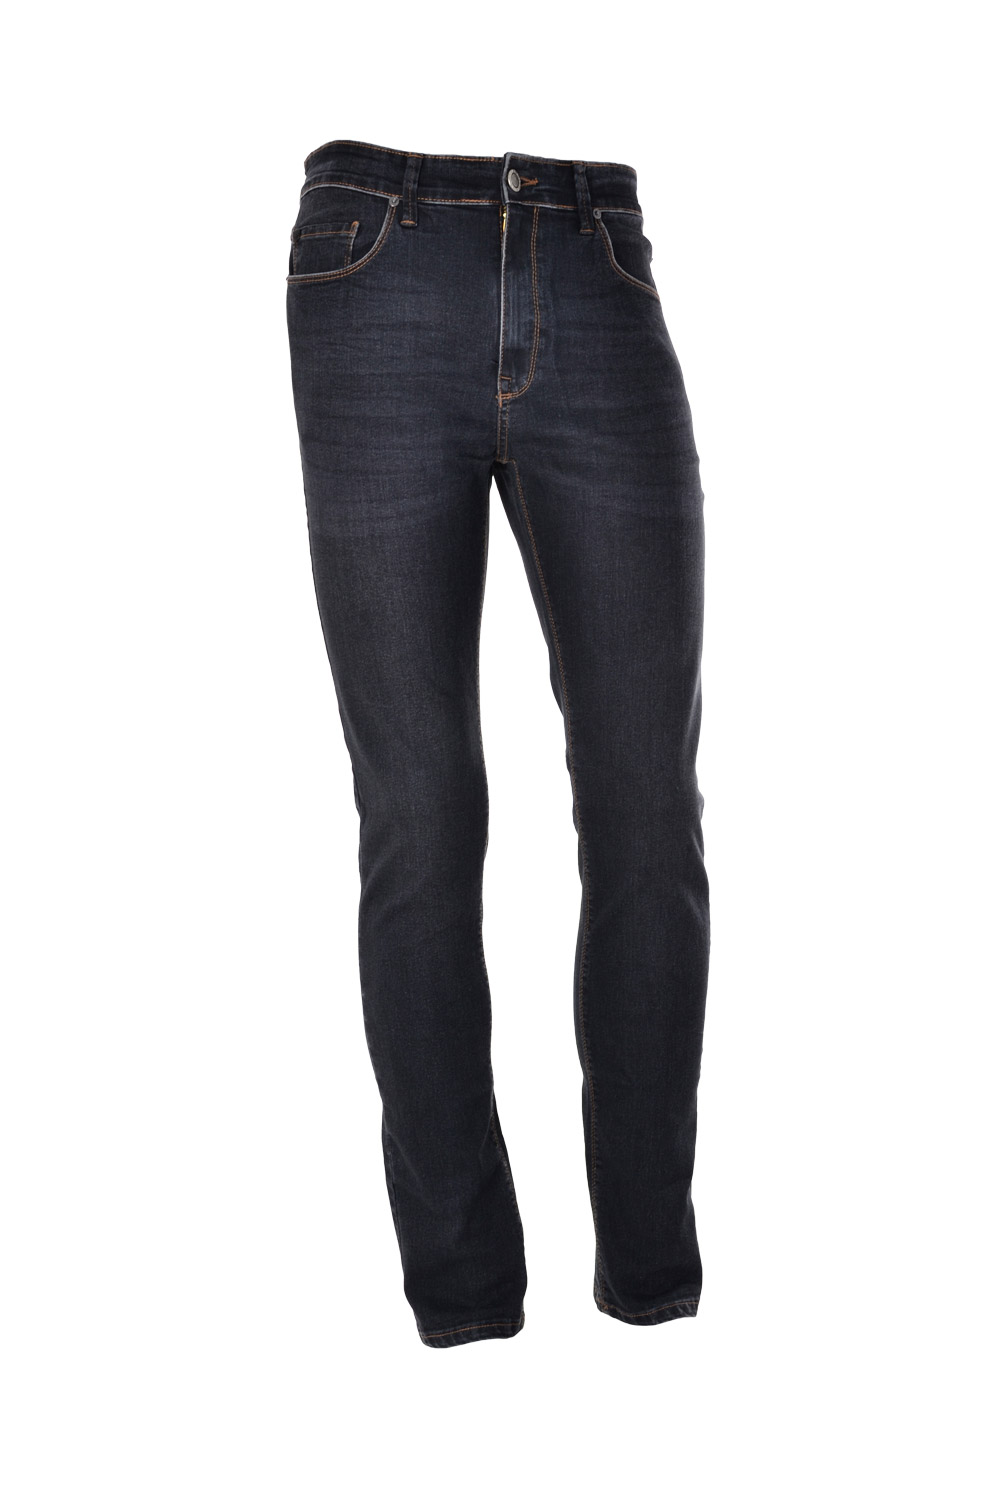 CALÇA JEANS BLUES POLIALGODAO & ELASTANO STRETCH STONED BLACK*